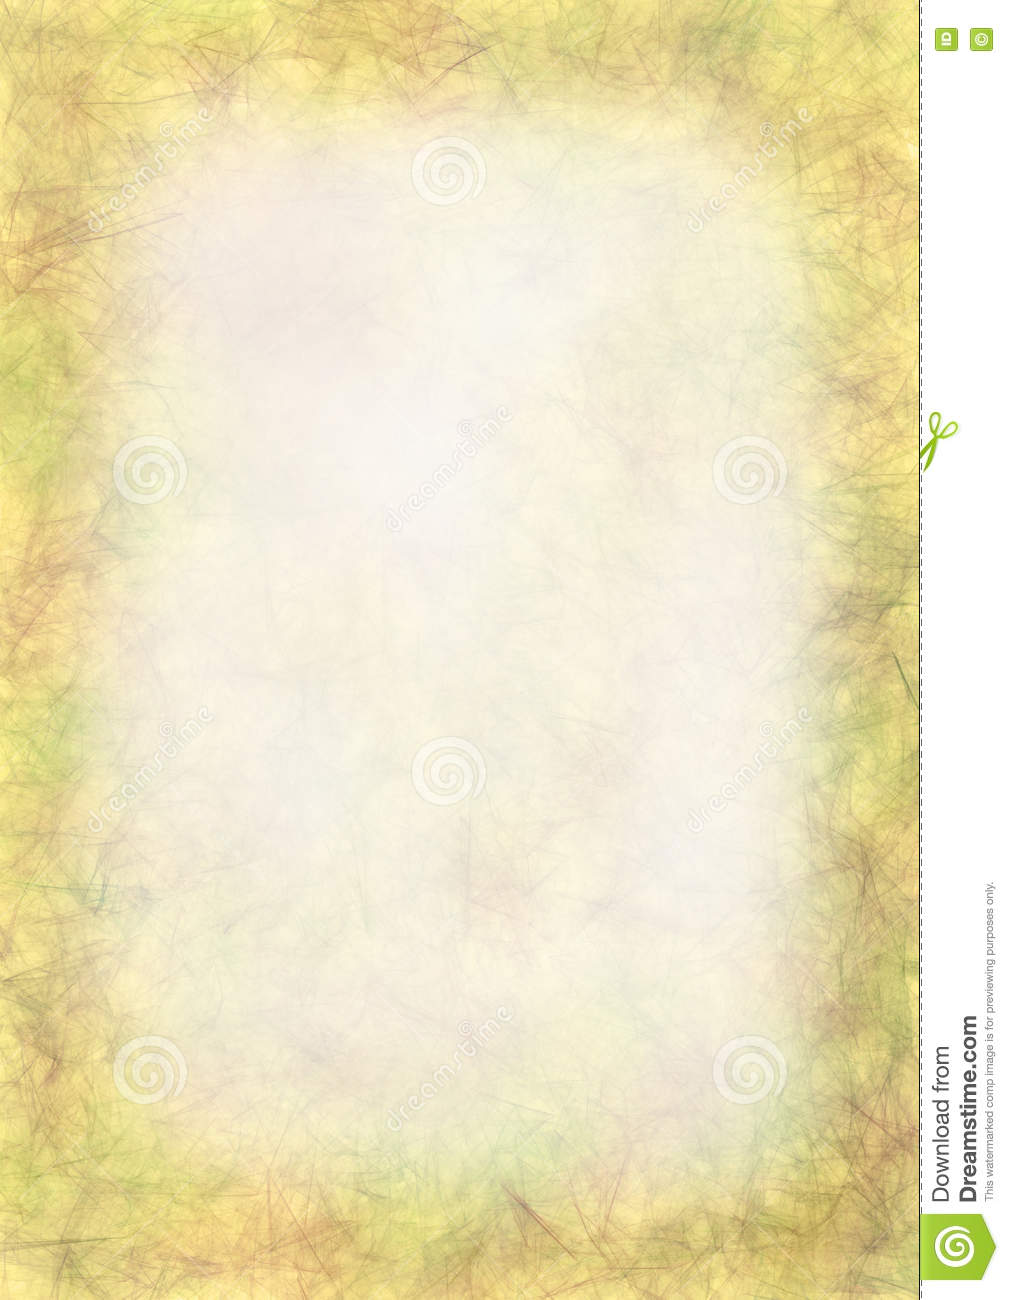 Pastel Drawn Textured Background Crumpled Old Paper Blank For